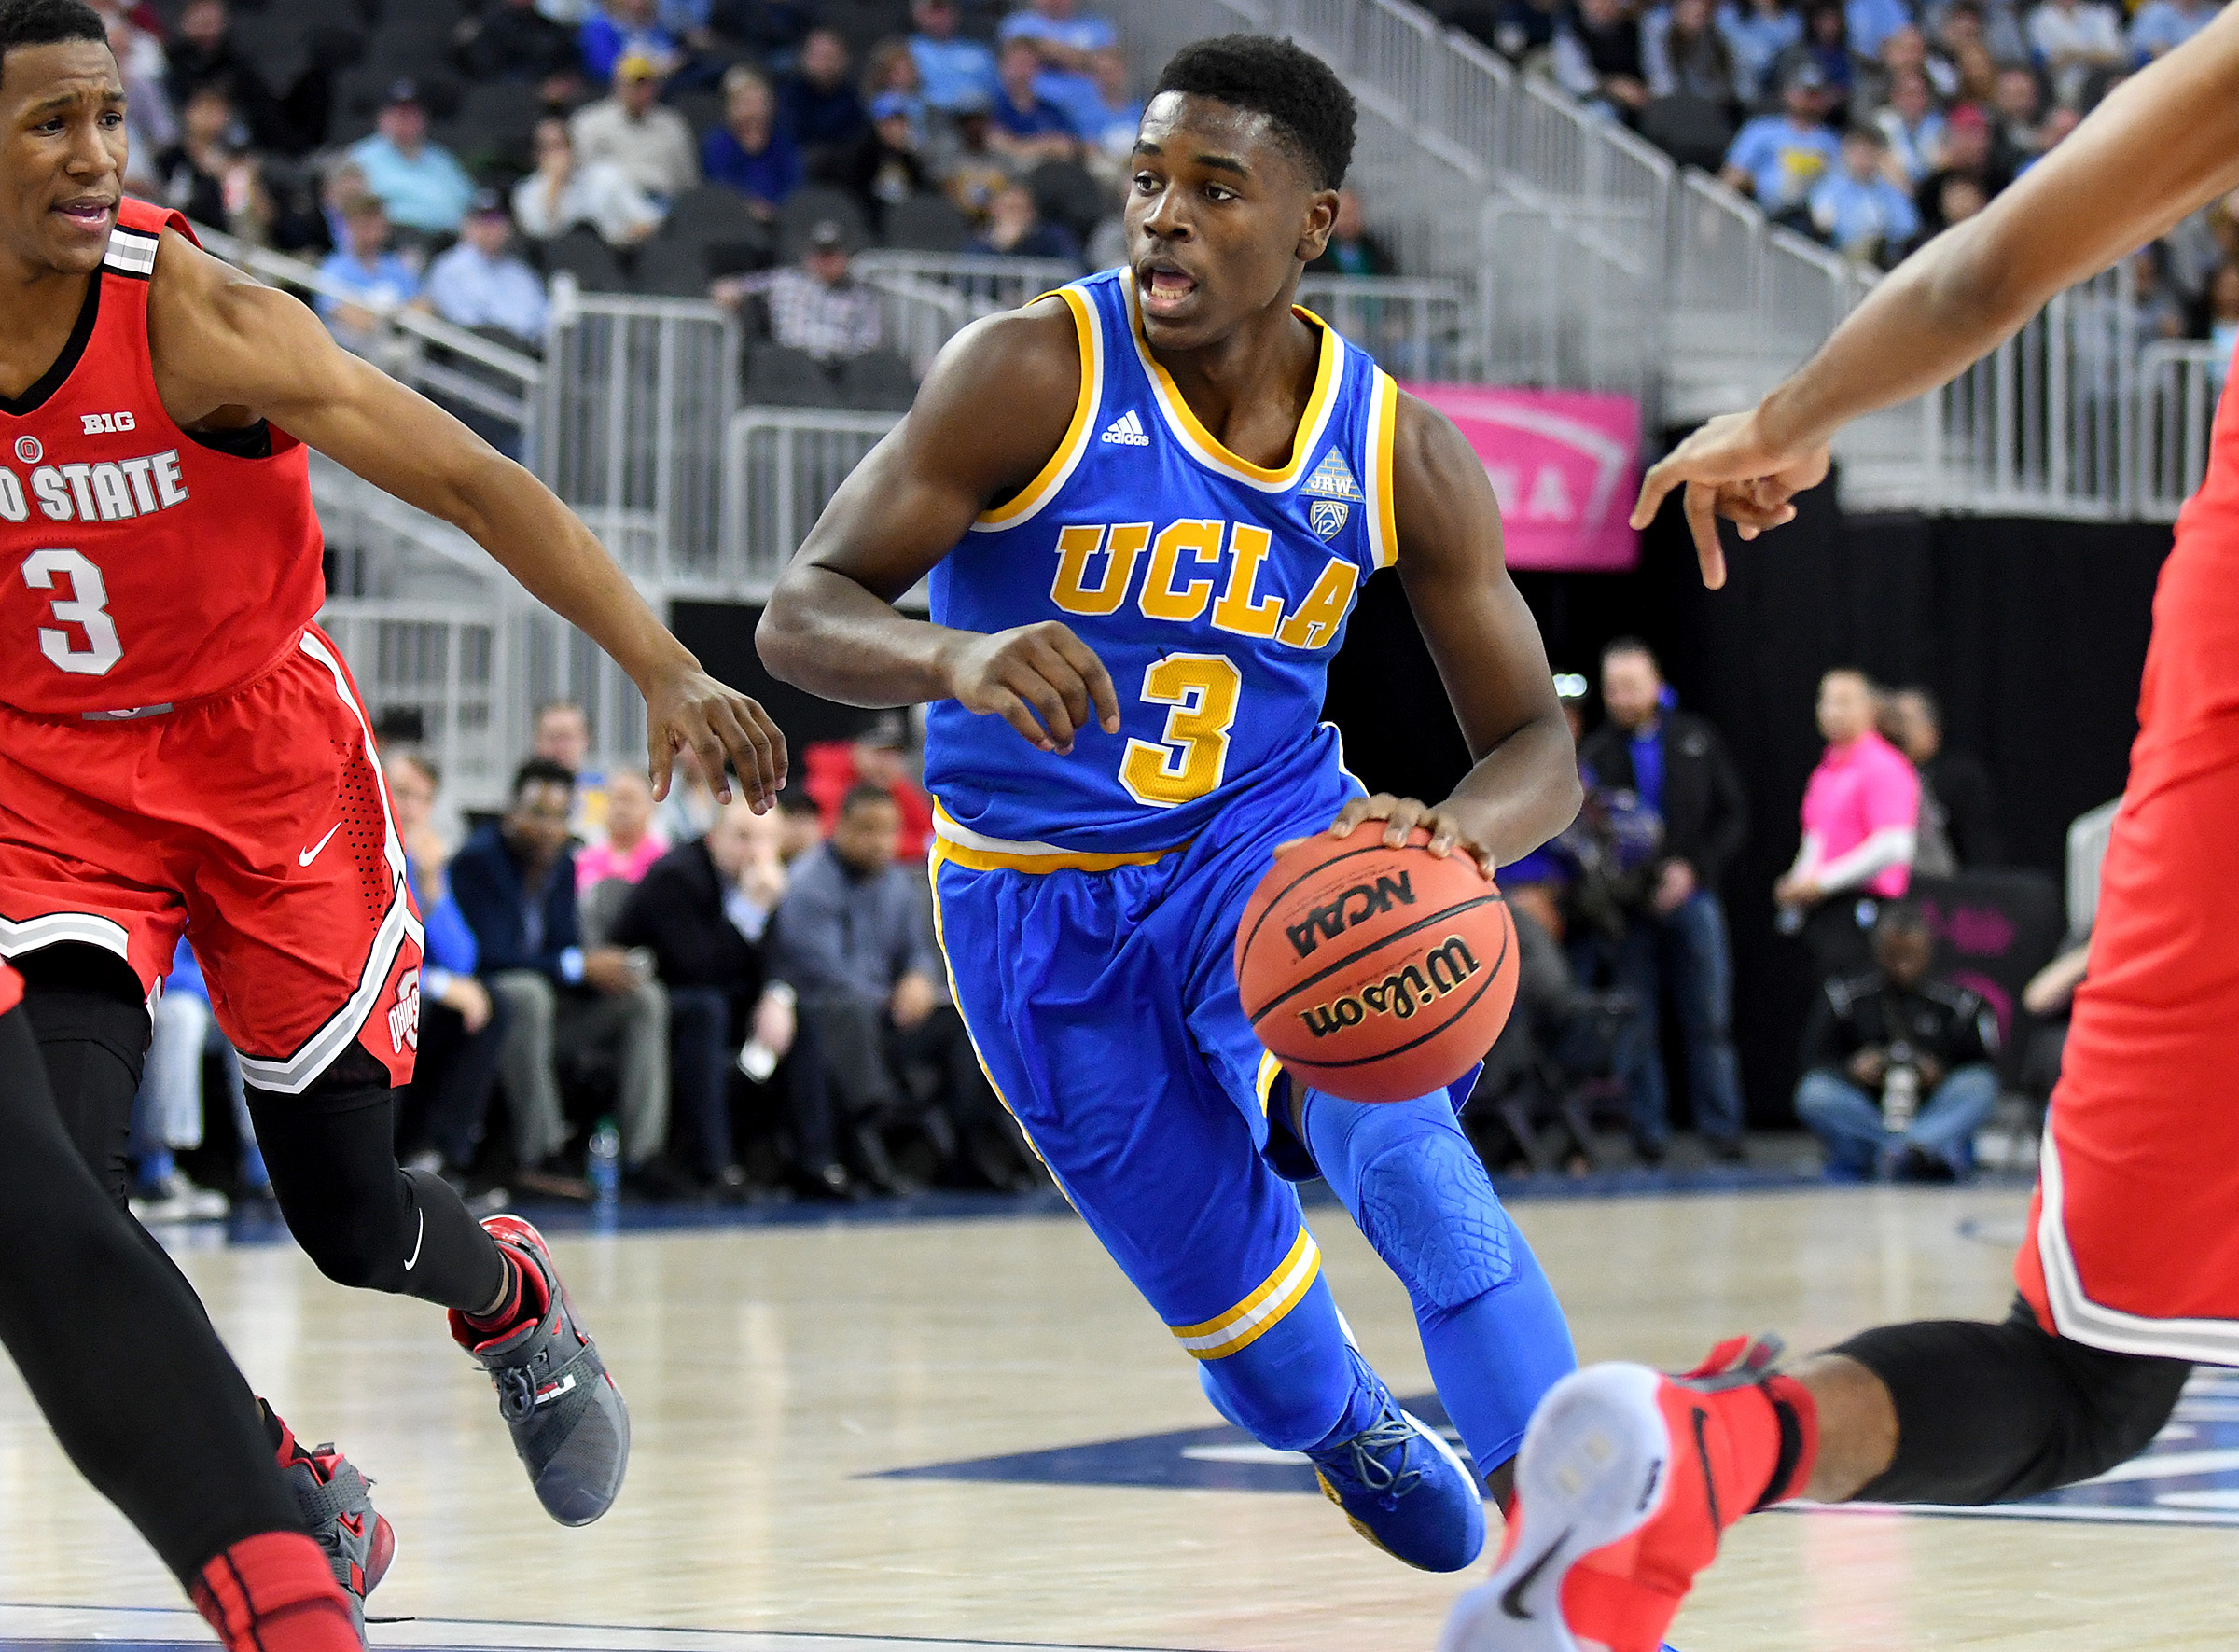 9751435-ncaa-basketball-ohio-state-vs-ucla